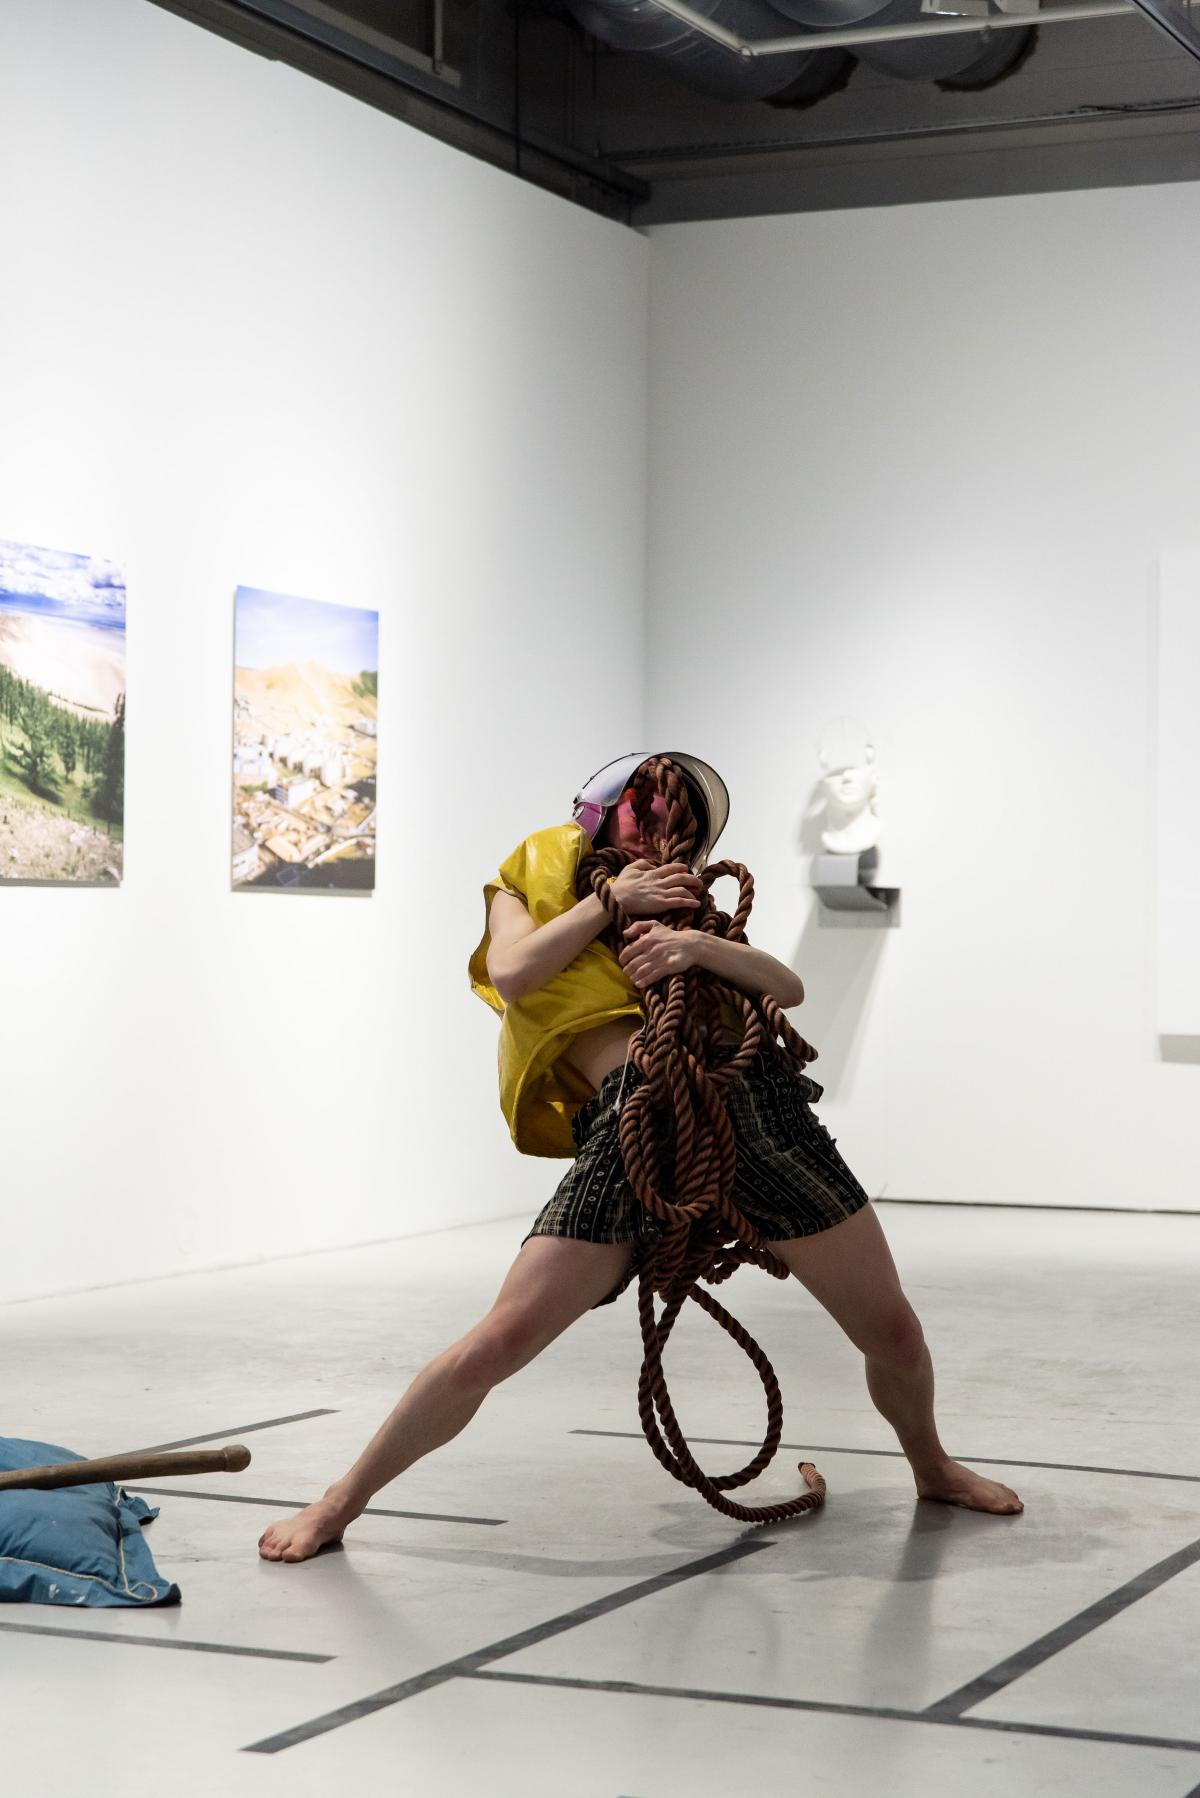 A person wearing a pink former police helmet and a yellow life jacket is holding a bundle of red sea rope close to their chest. The person has a wide stance and is leaning back in their posture. They are performing in a gallery with some artwork behind them.